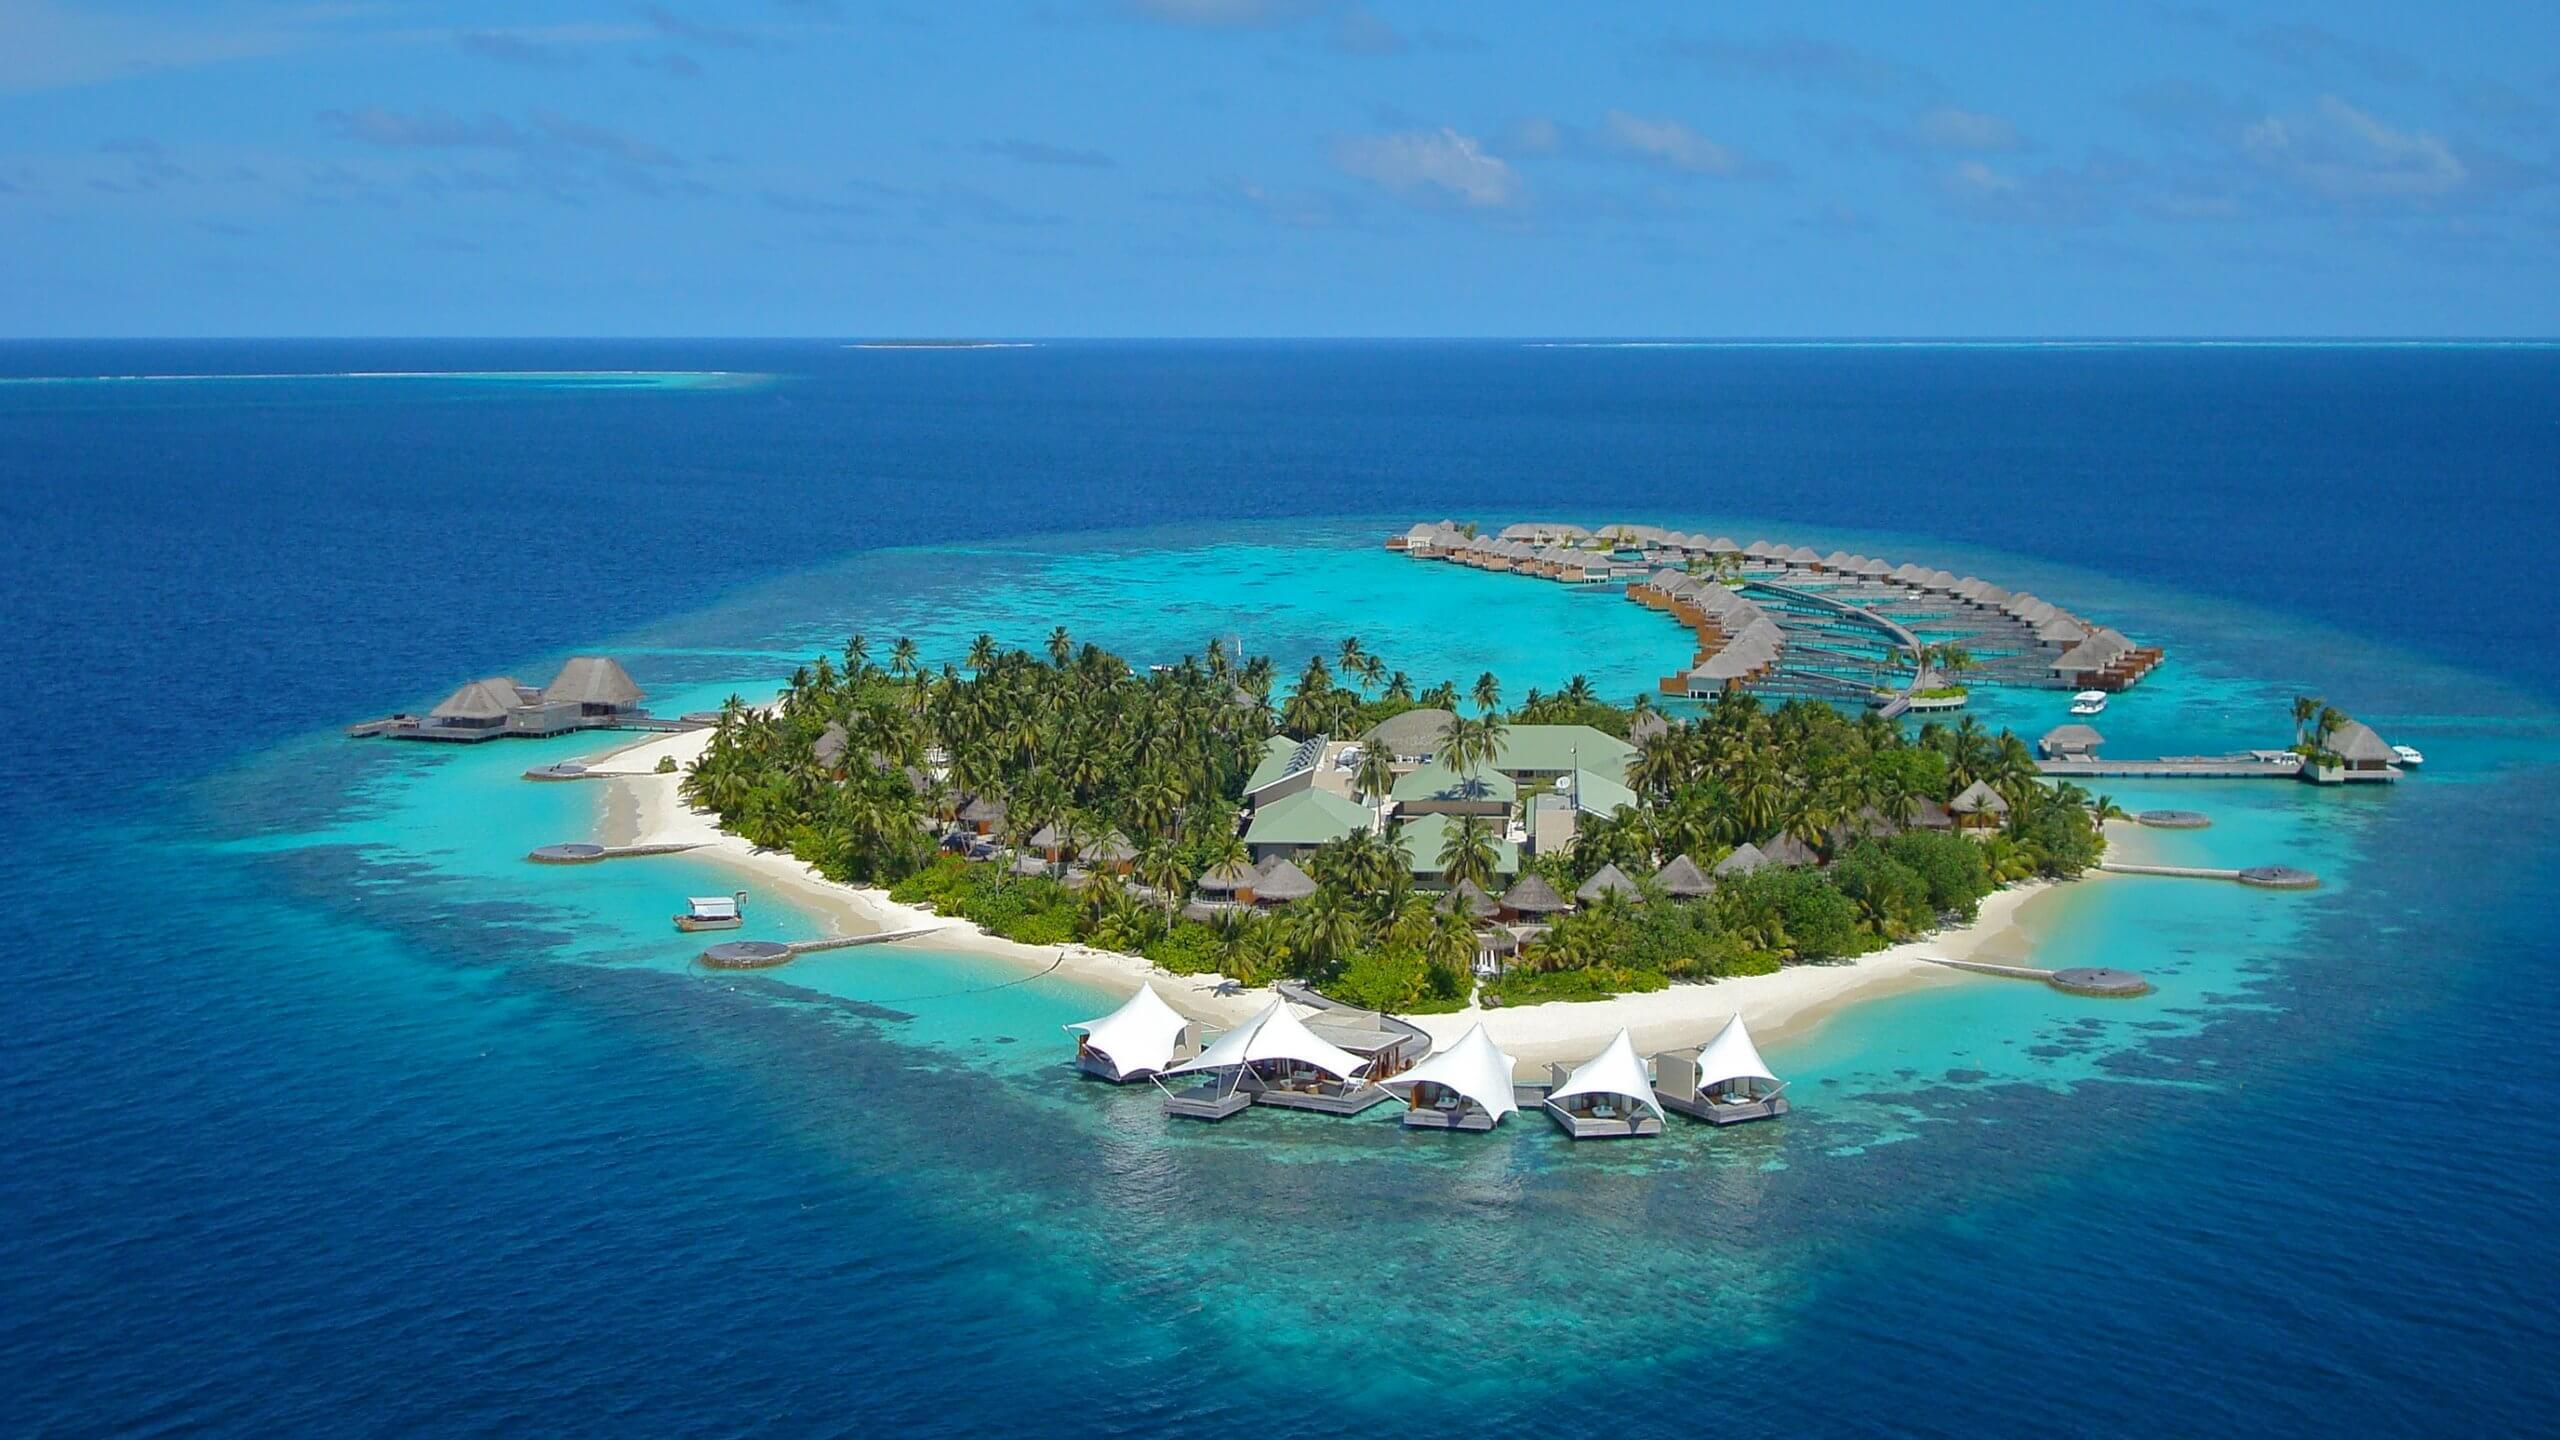 Maldives Chaaya Island Holiday Travel and Tour Package